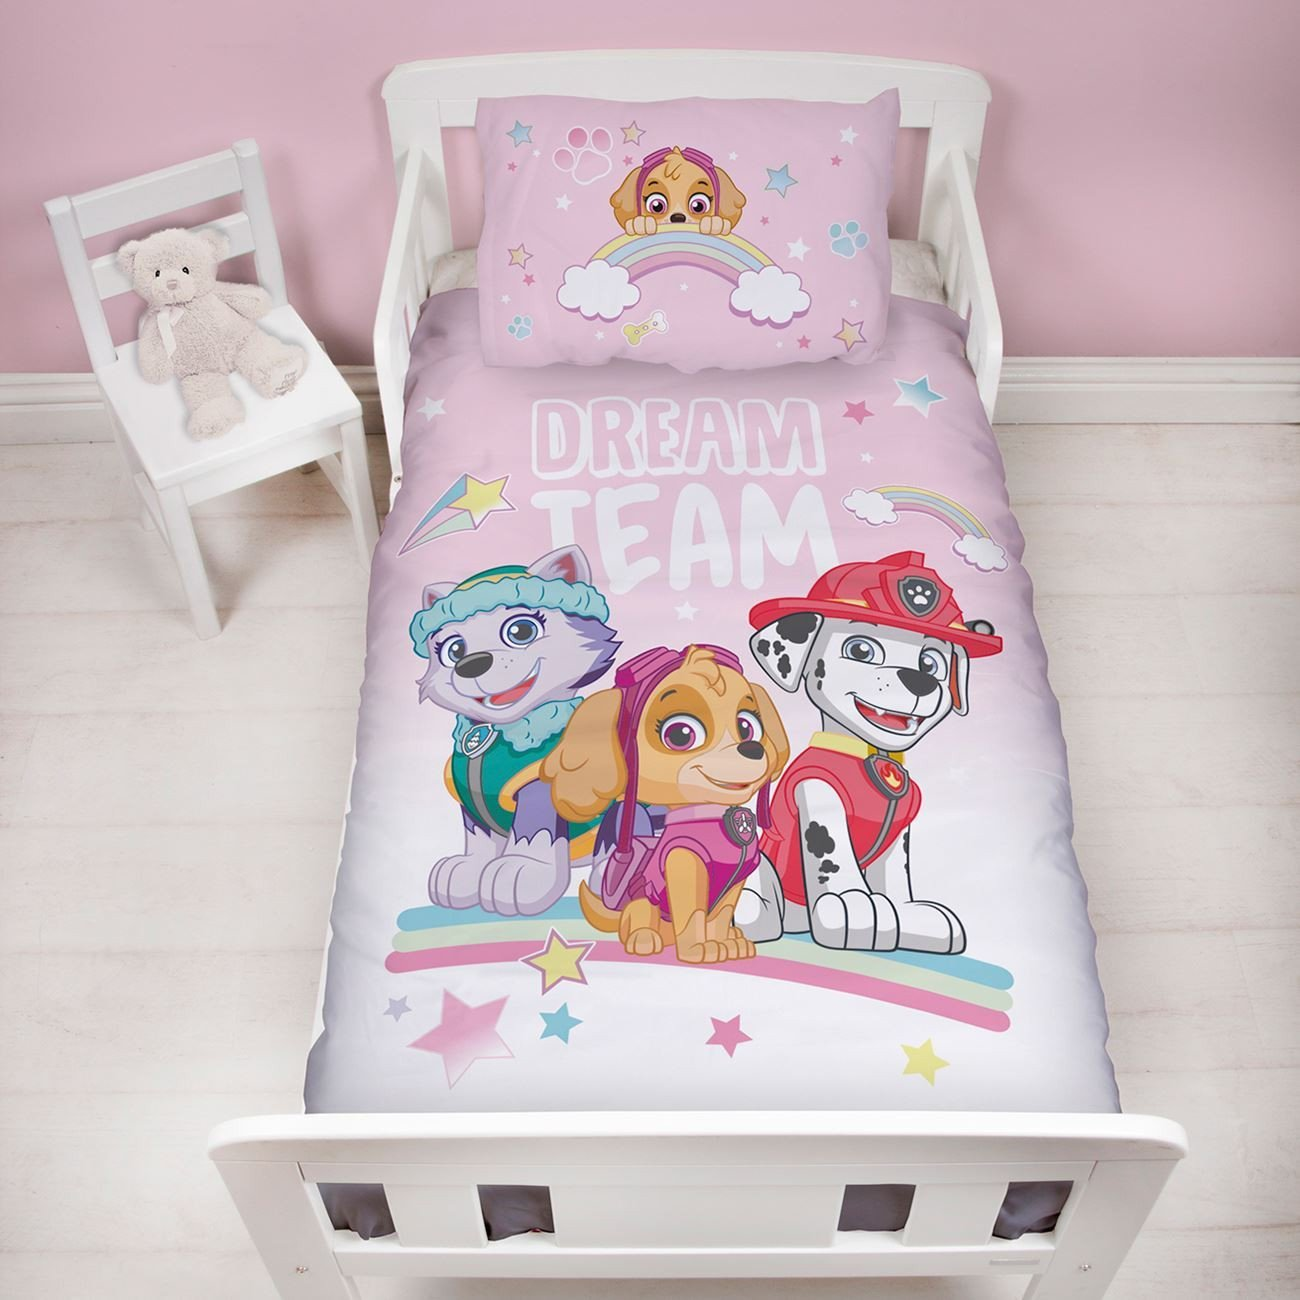 Disney Princess Bedroom Set Lovely Details About Paw Patrol Junior toddler Duvet Cover Set Pastels